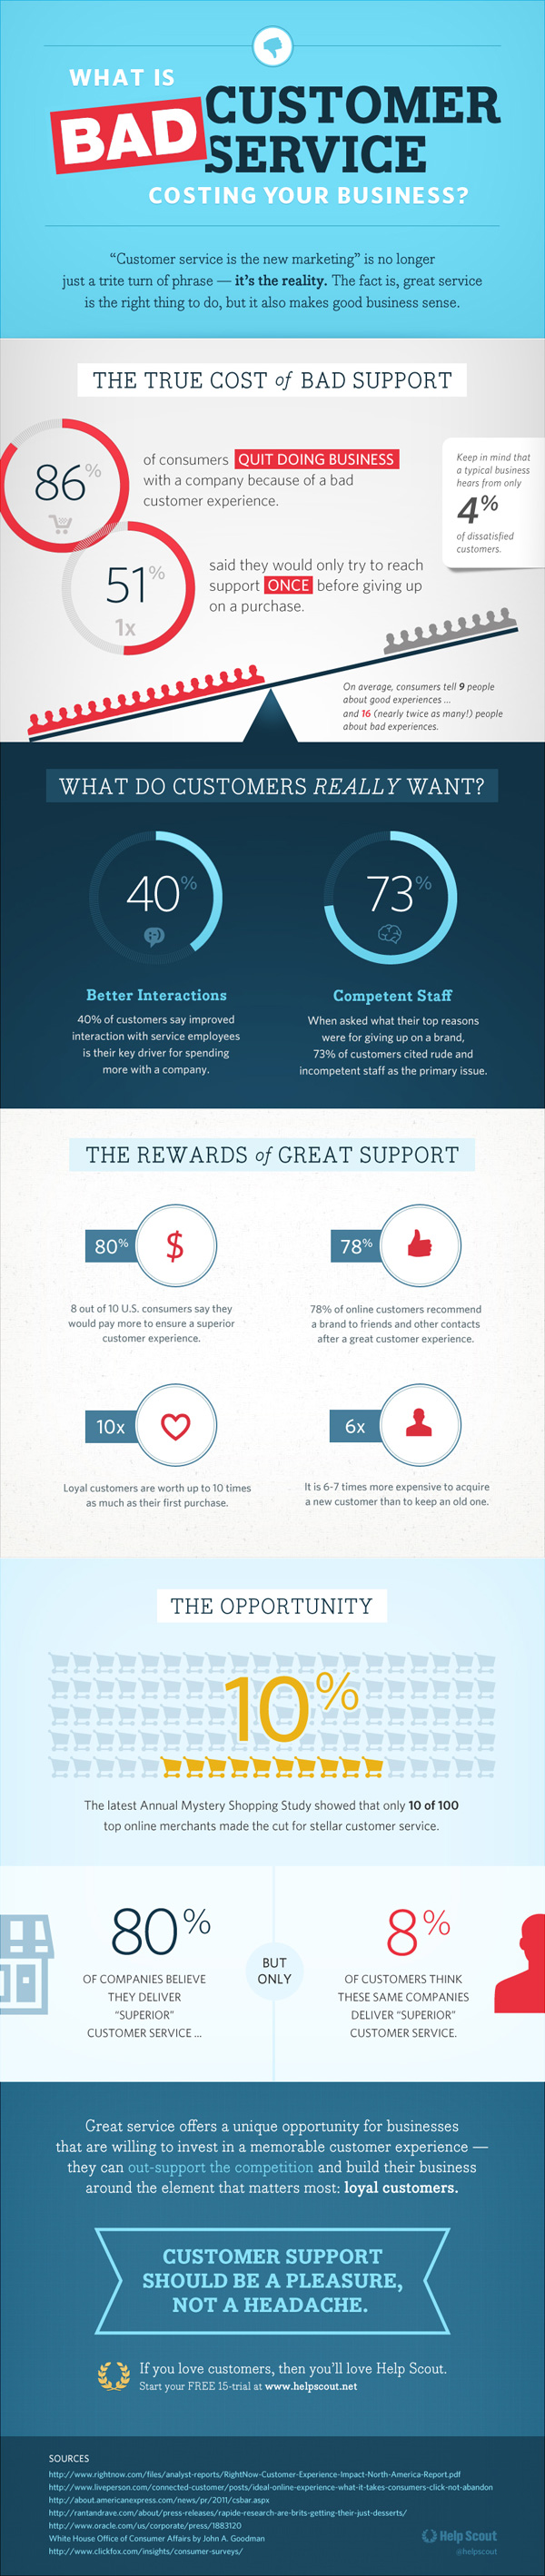 The True Cost Of Bad Customer Service [Infographic] - socialmouths